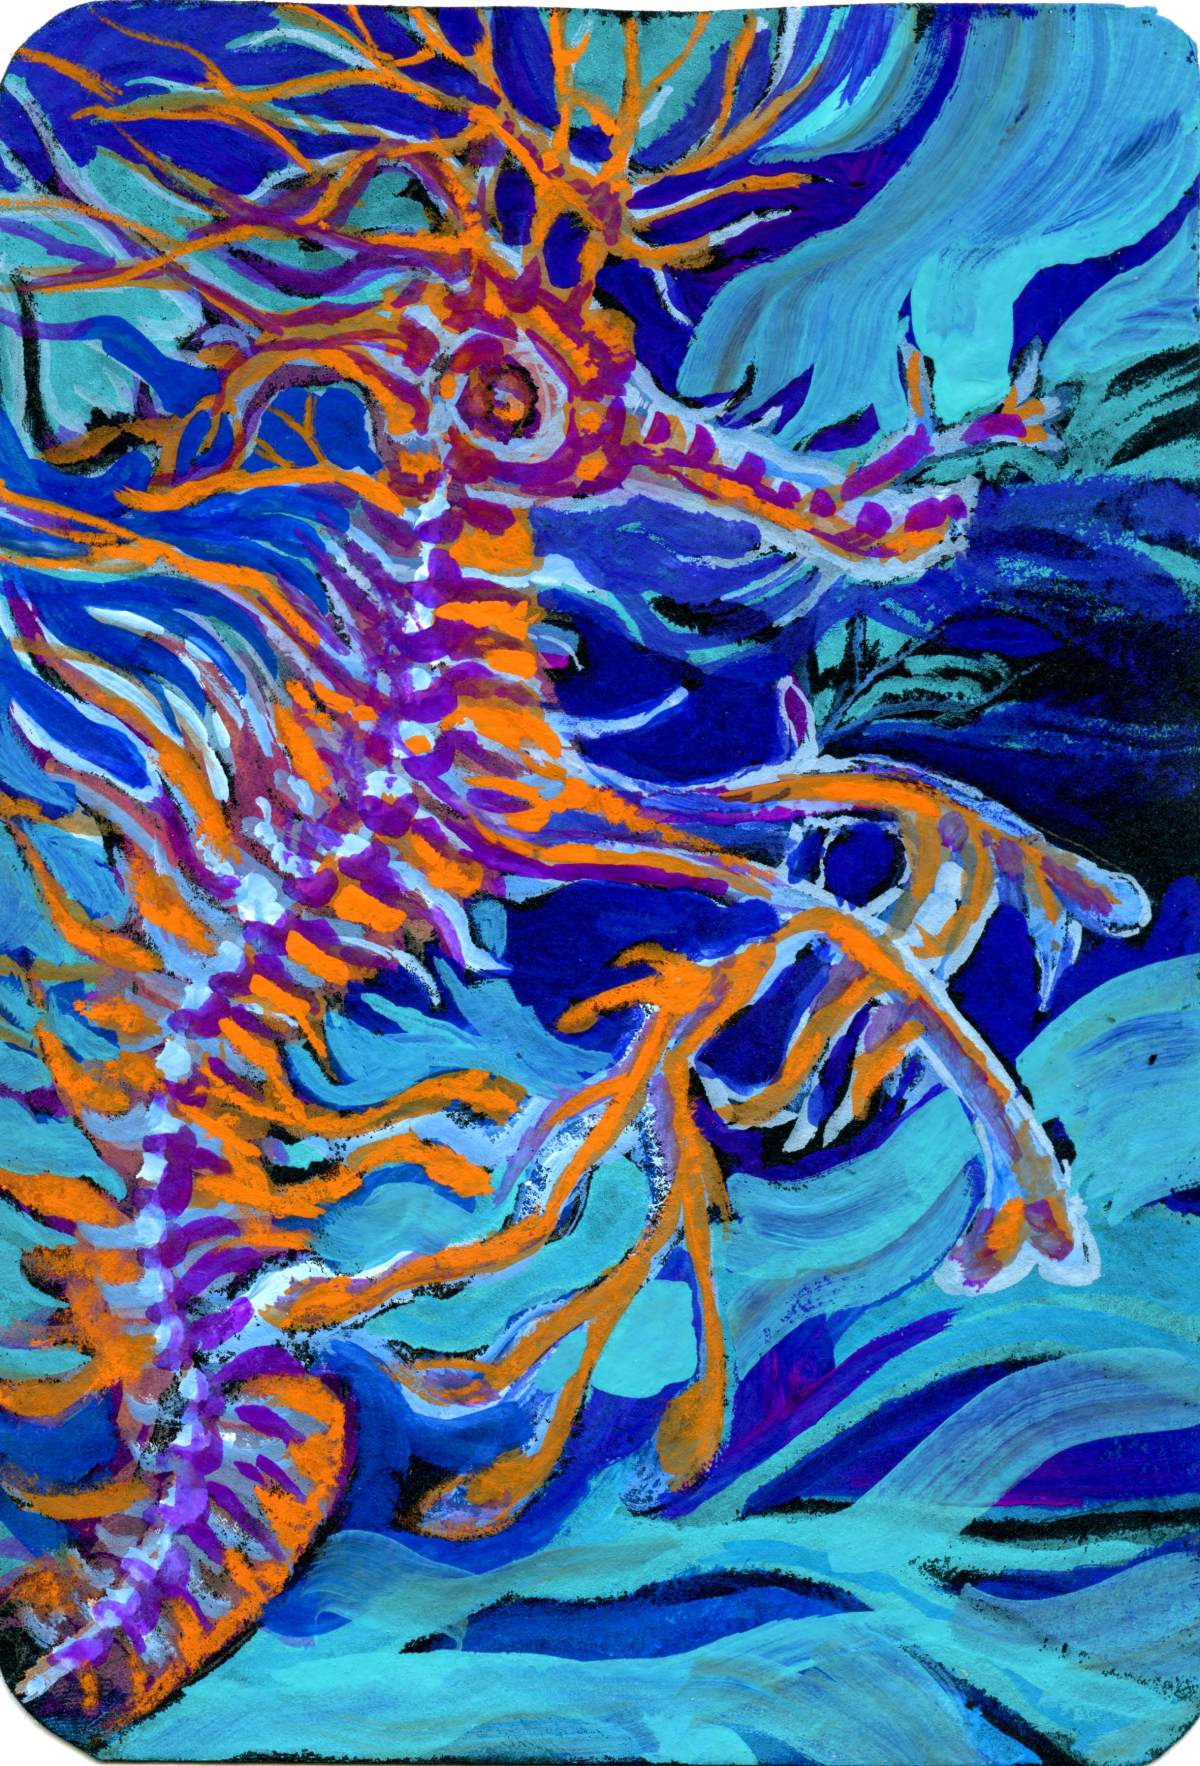 Leafy Sea Dragon – Postcards for the Lunch Bag